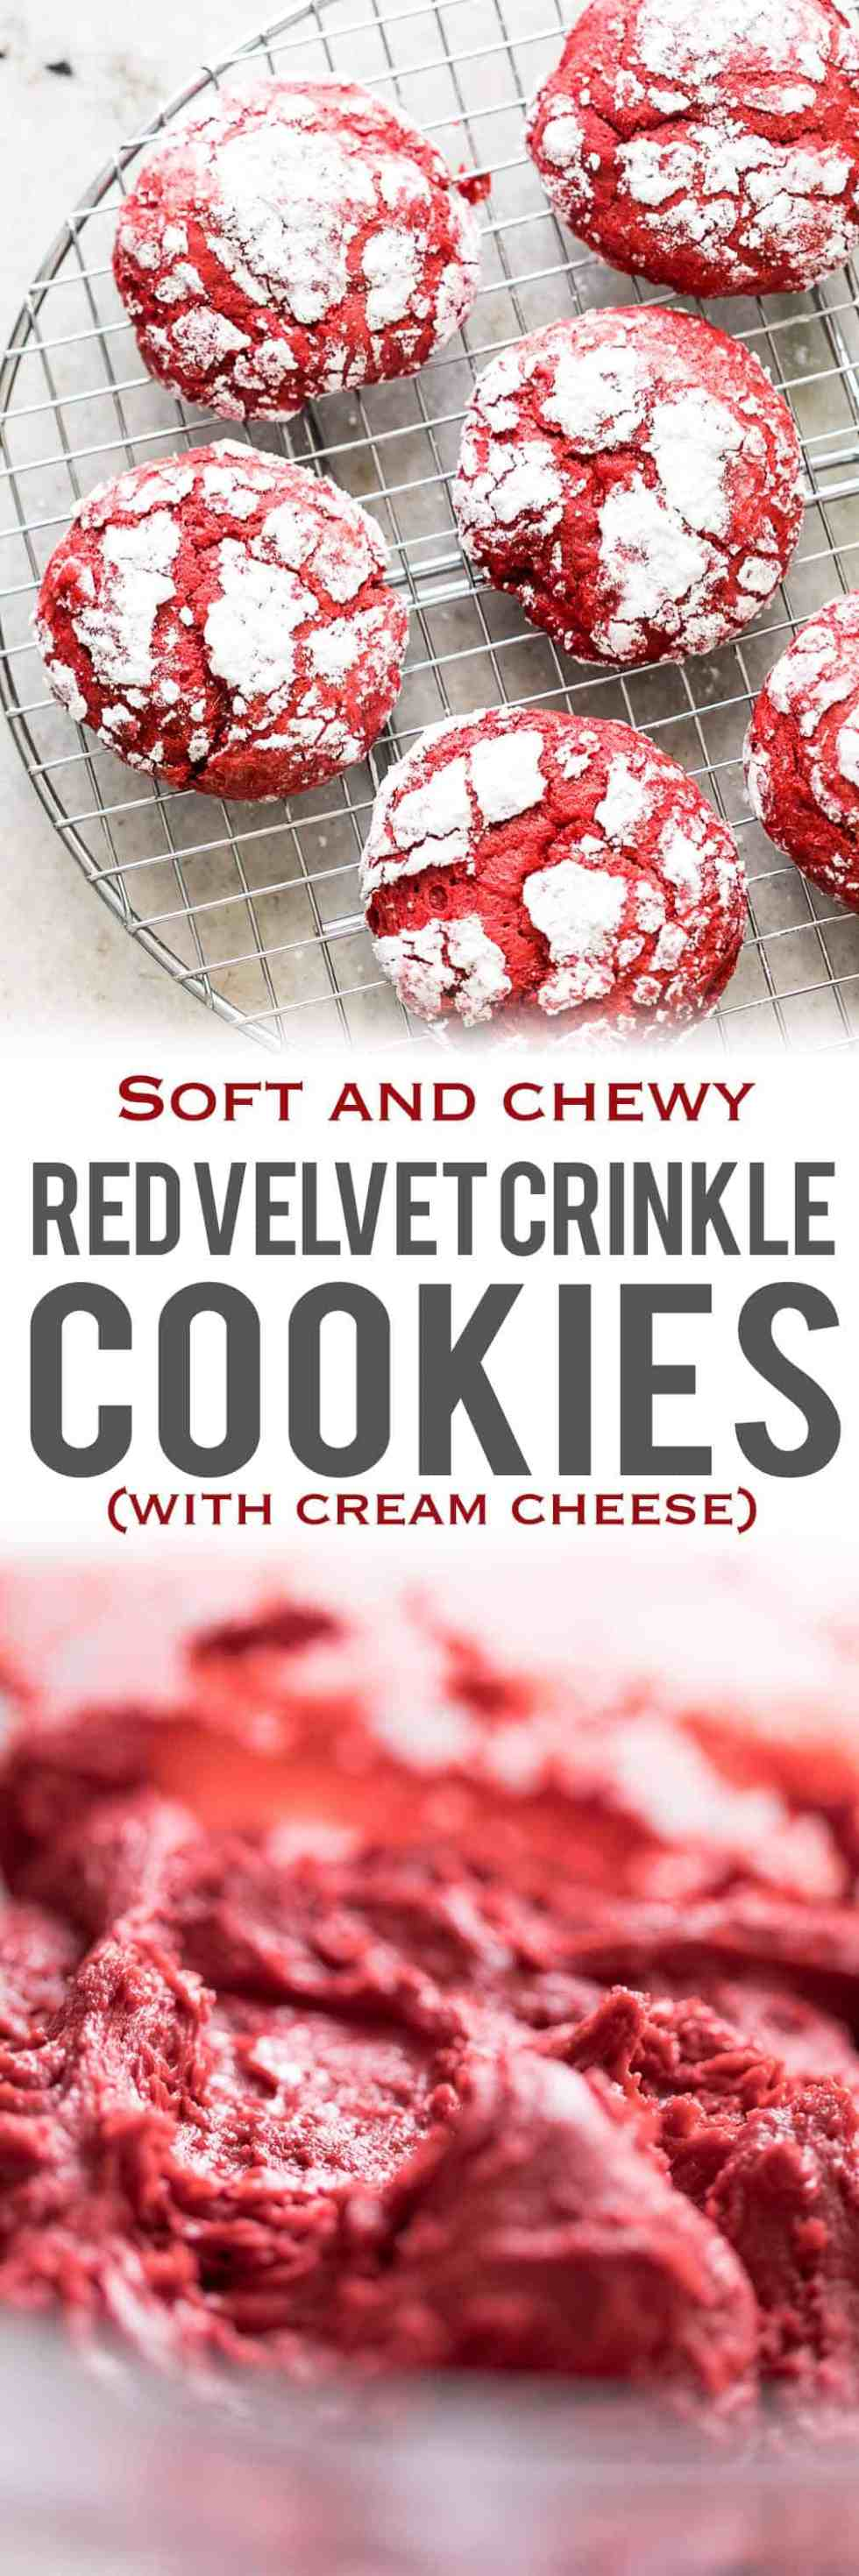 Red Velvet Crinkle Cookies are soft, chewy cookies that are made from scratch with cream cheese and will fit right in with your holiday plans. Use them for cookie swaps, gifting or just to pass around the Christmas table!